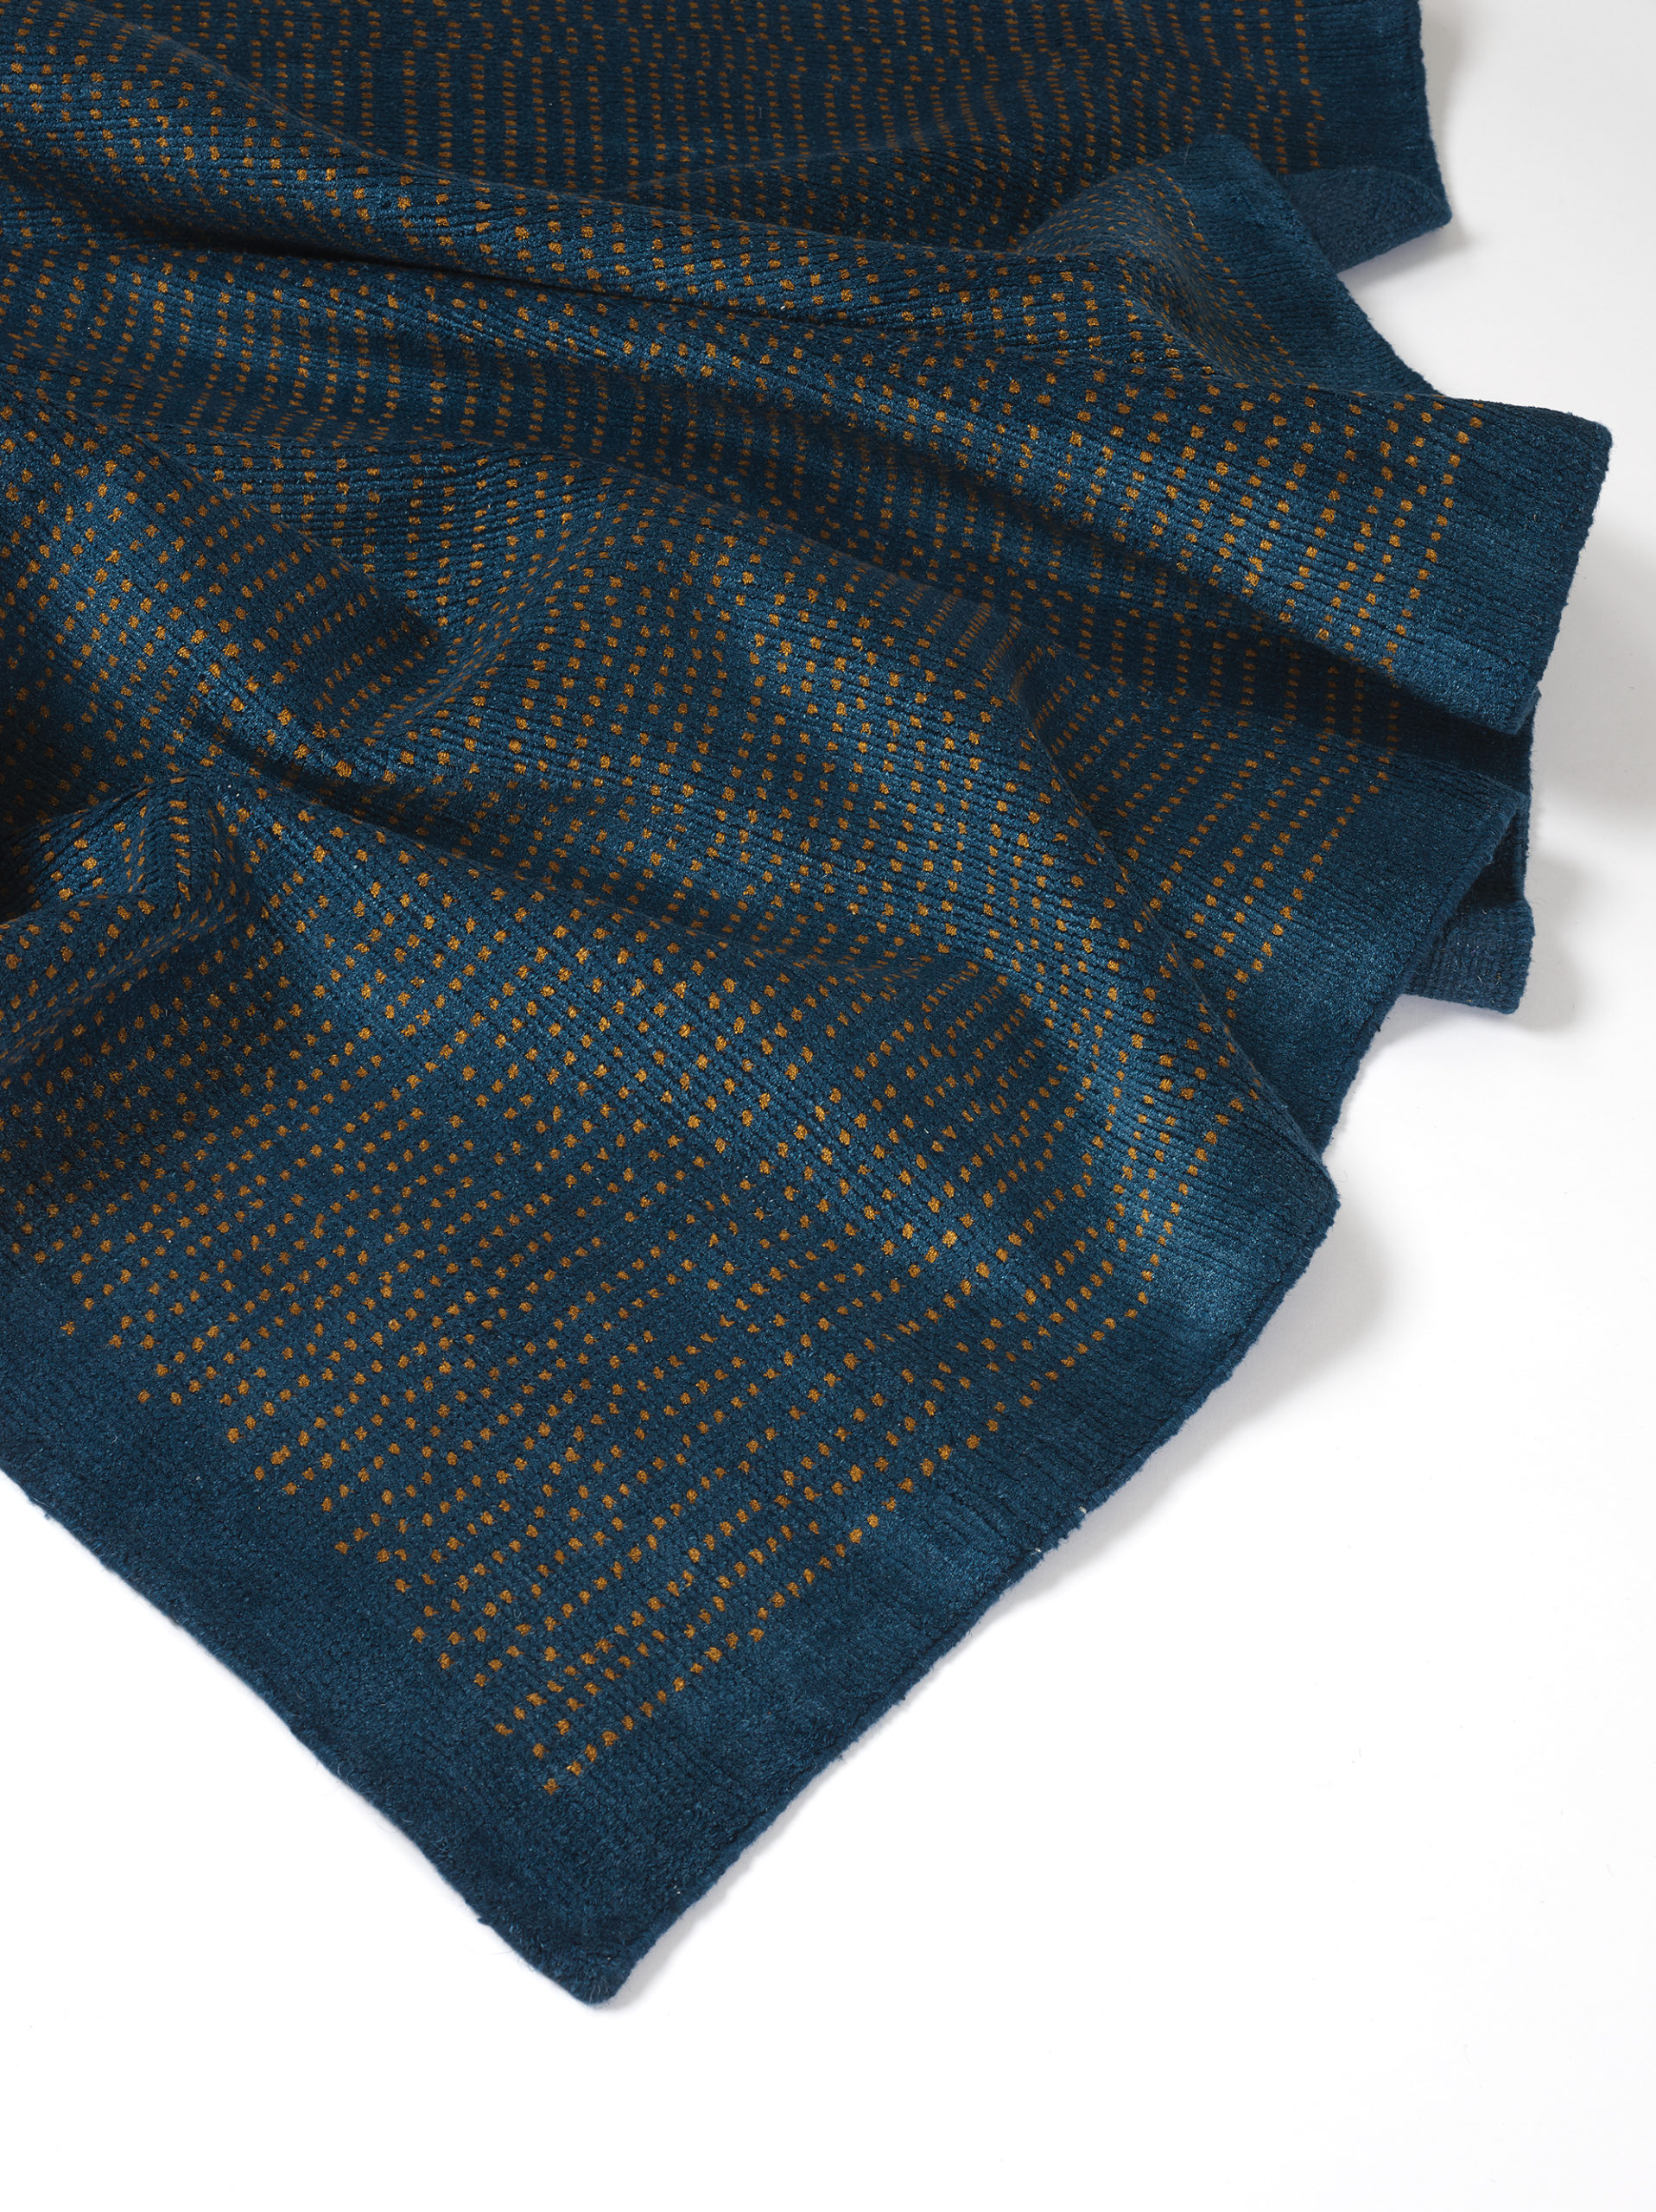 crosby_street_studios_products_blue_rug_CSS_Chelsea_Seaworthy_Detail_02-scaled-1